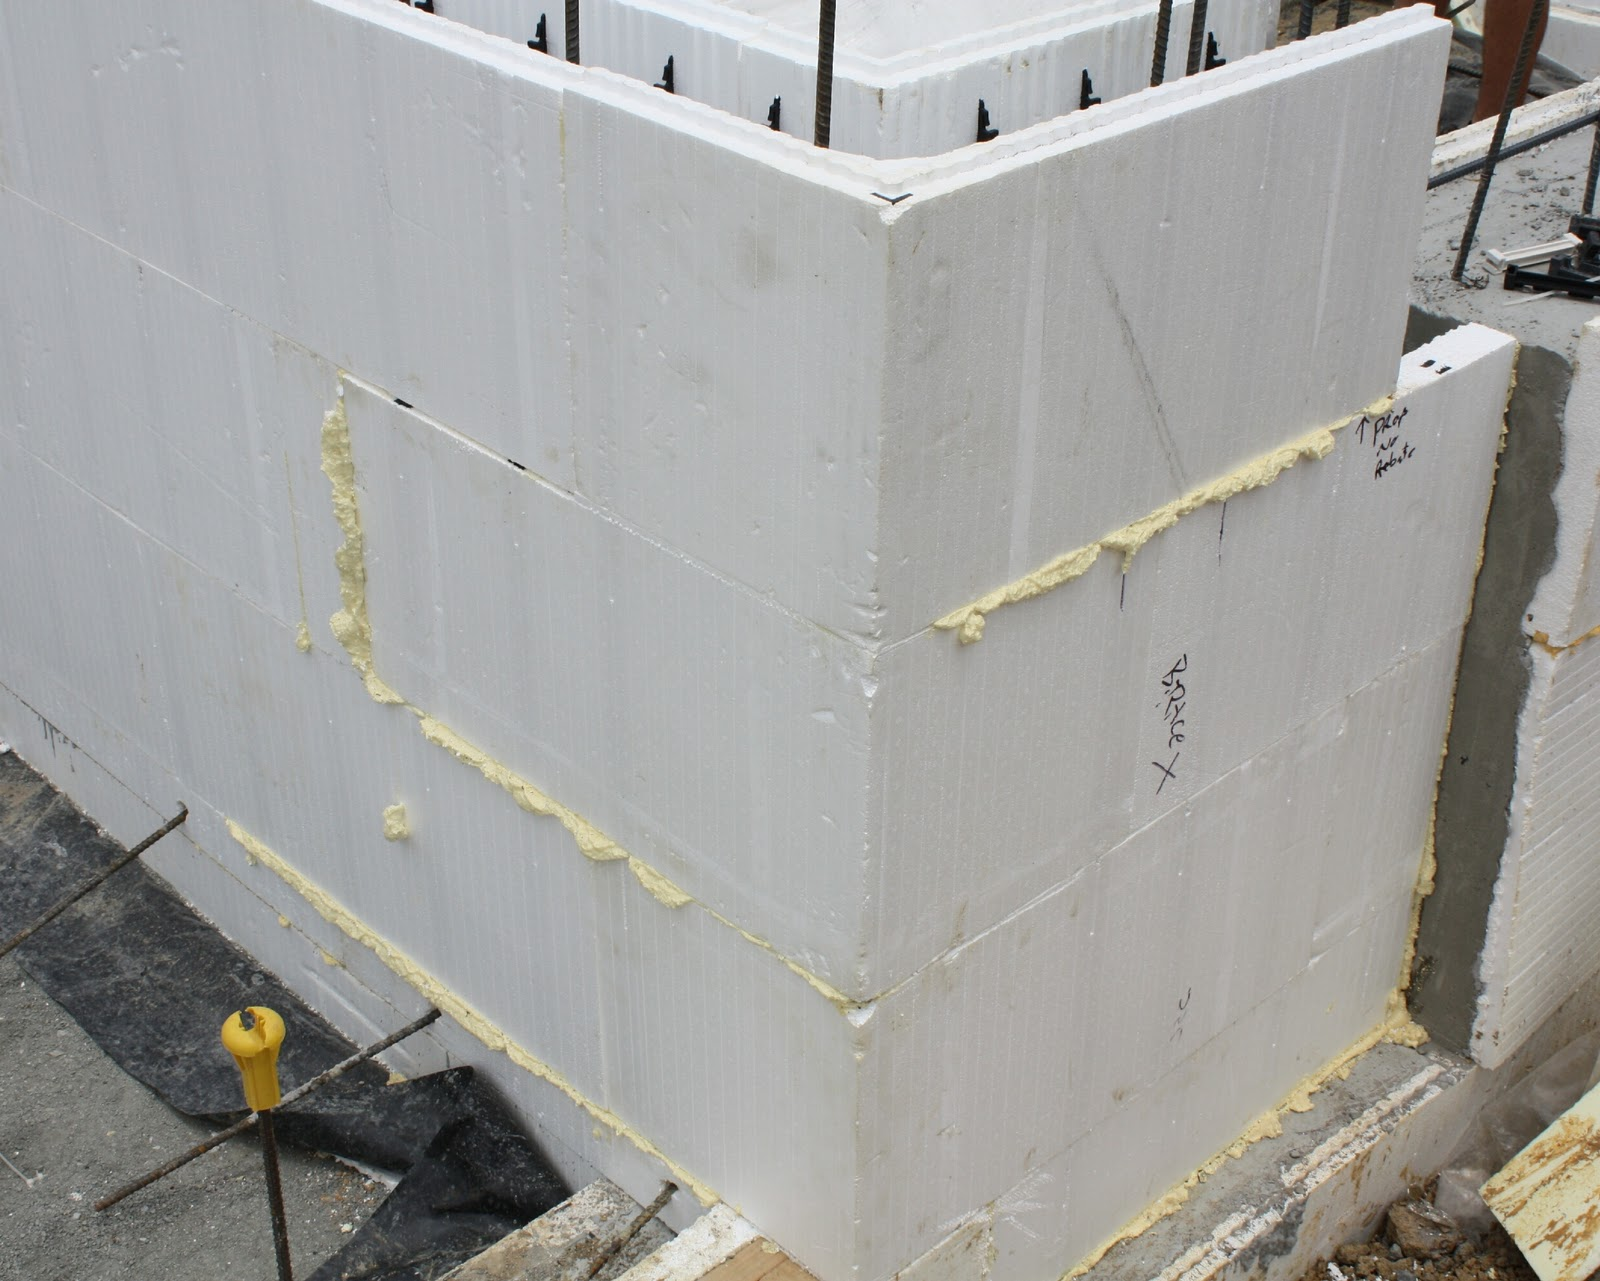 The Polystyrene Blocks Are Sealed With An Expanding Gap Filler